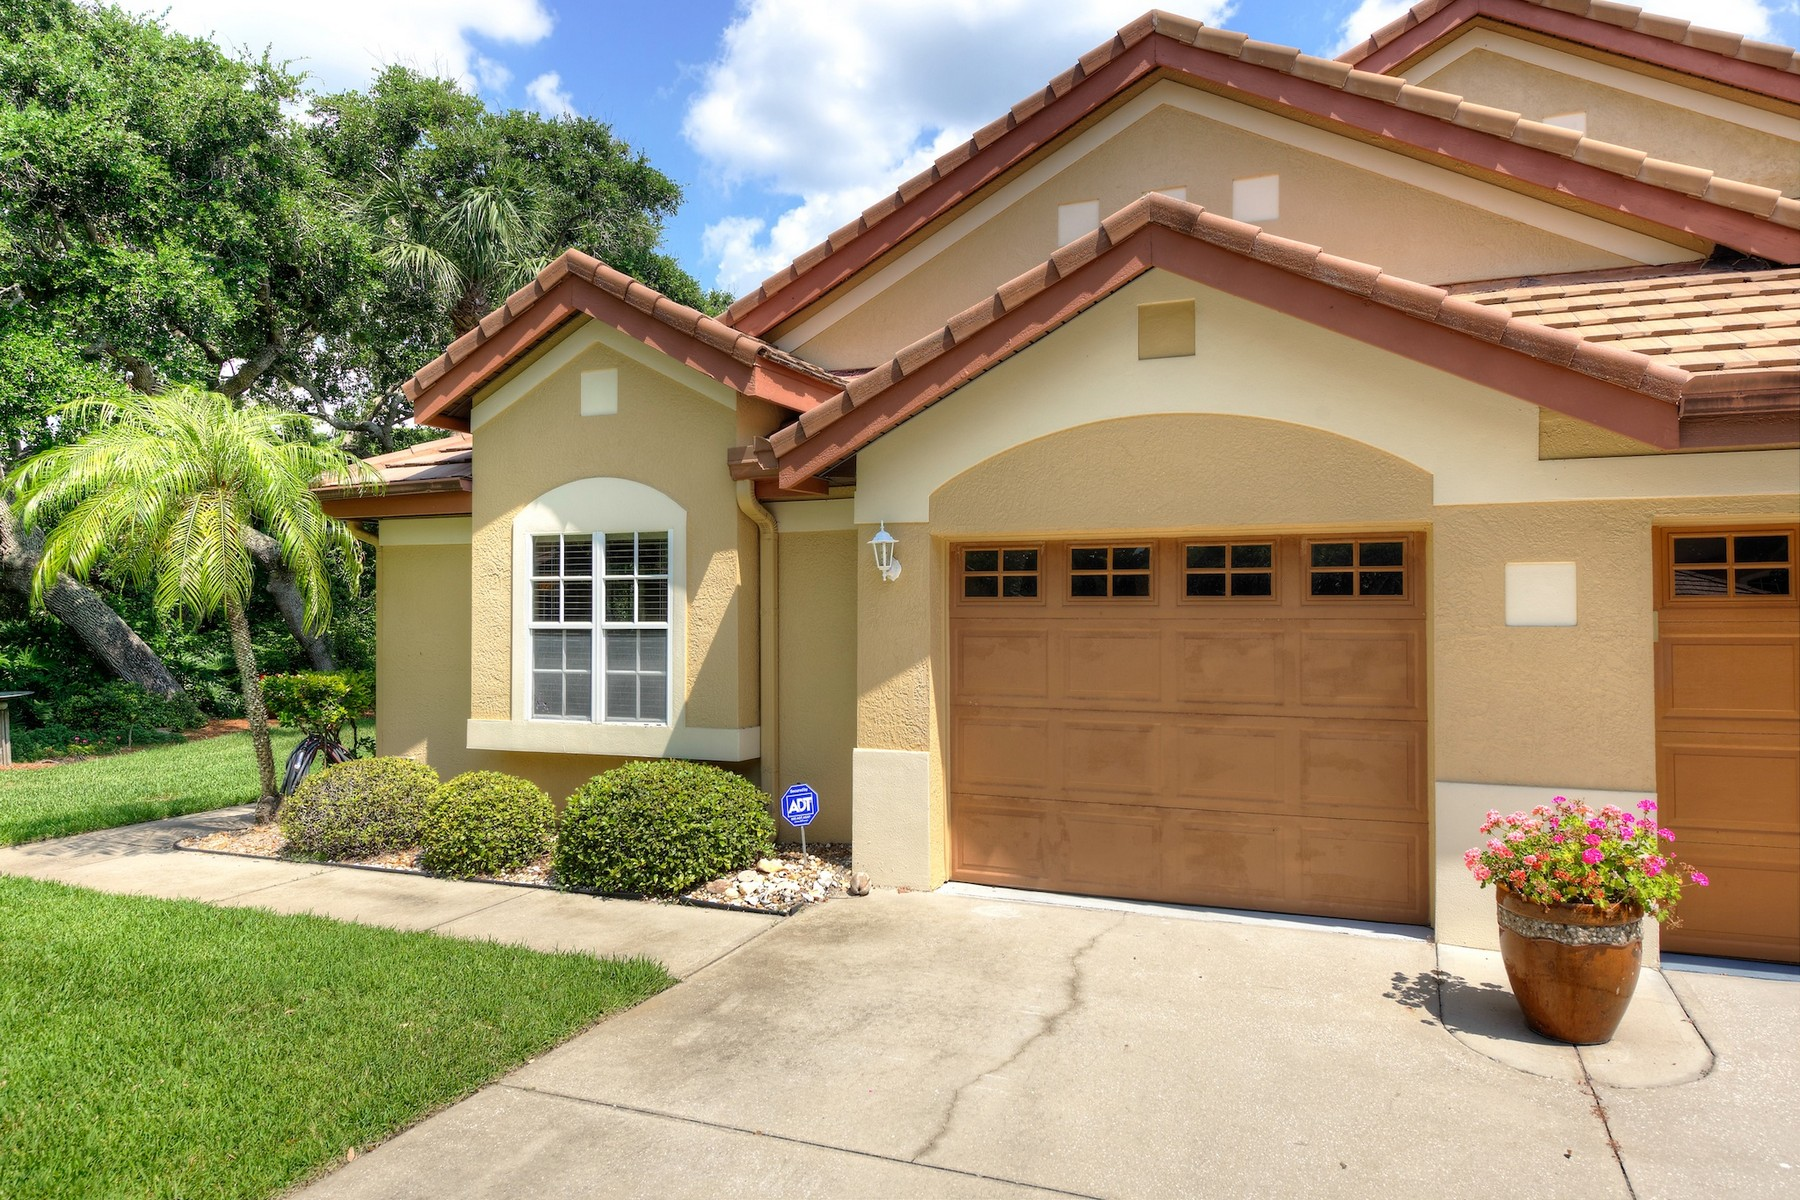 Single Family Home for Sale at St. Andrews Village 128 Caledonia Drive Melbourne Beach, Florida 32951 United States